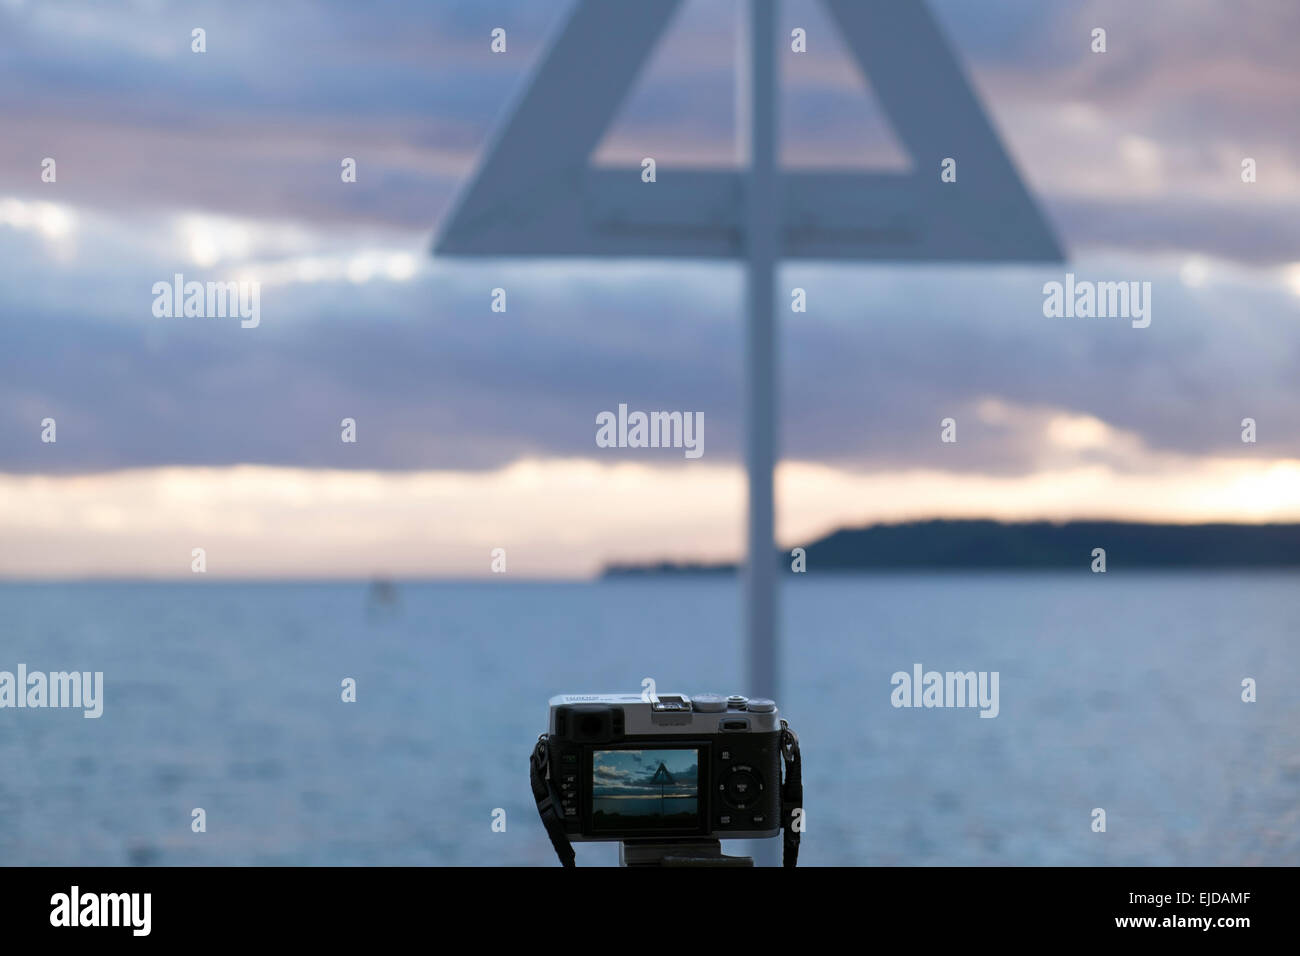 Fujifilm X100 camera set up on a tripod with scene visible in rear screen at Lake Taupo, New Zealand. - Stock Image